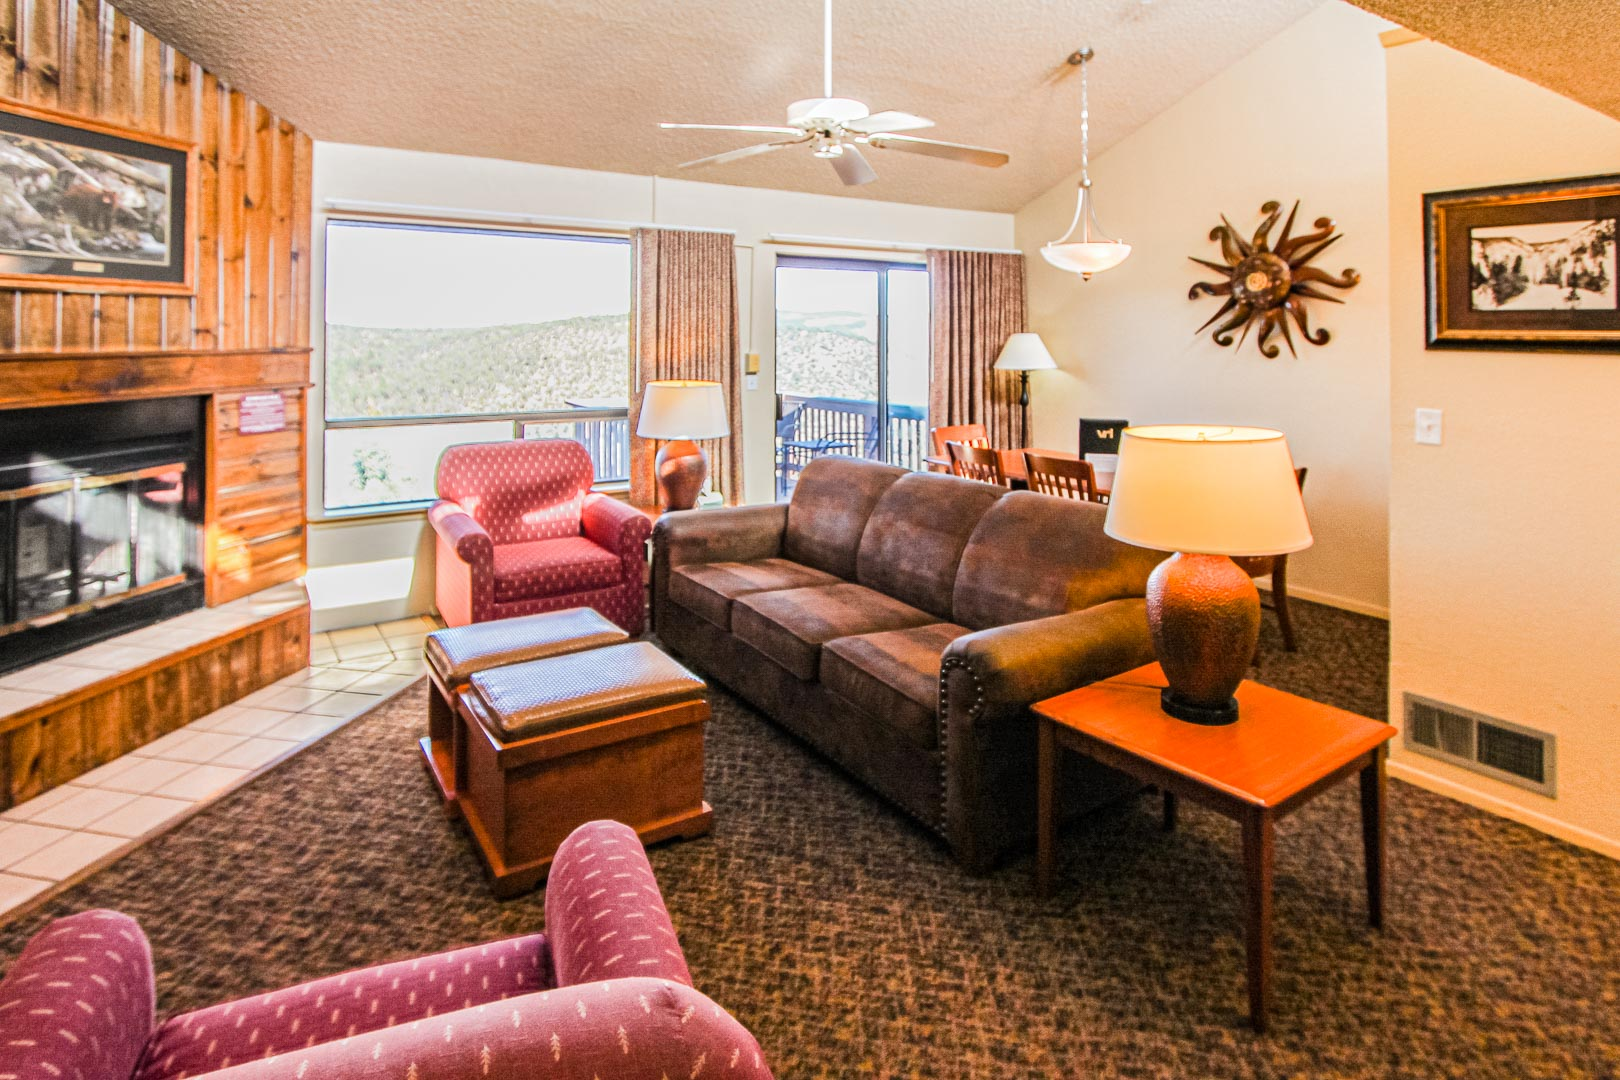 A standard living room area at VRI's Crown Point Condominiums in New Mexico.